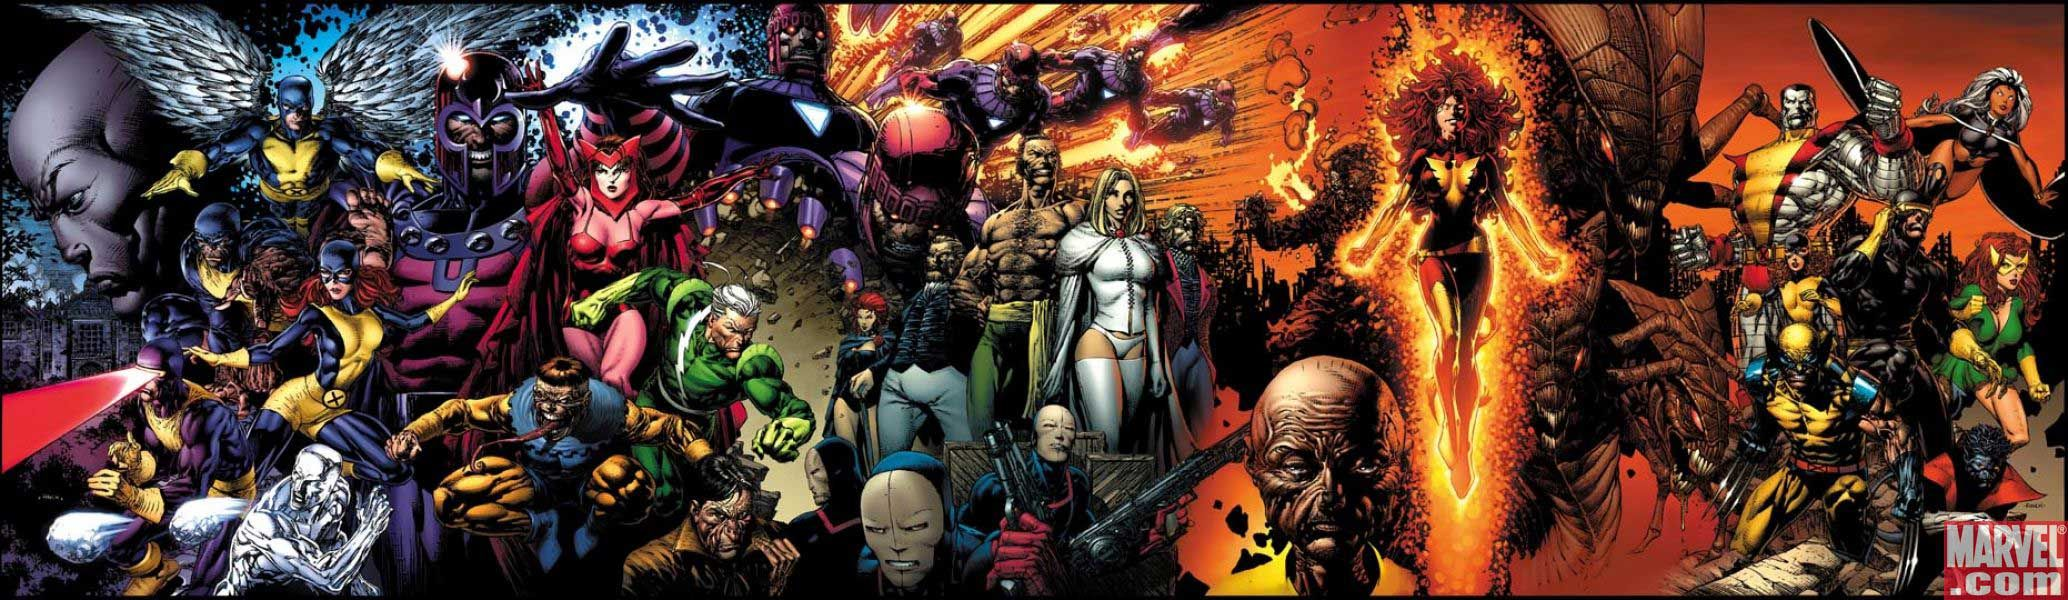 X Men Legacy By David Finch Poster David Finch X Men Man Character